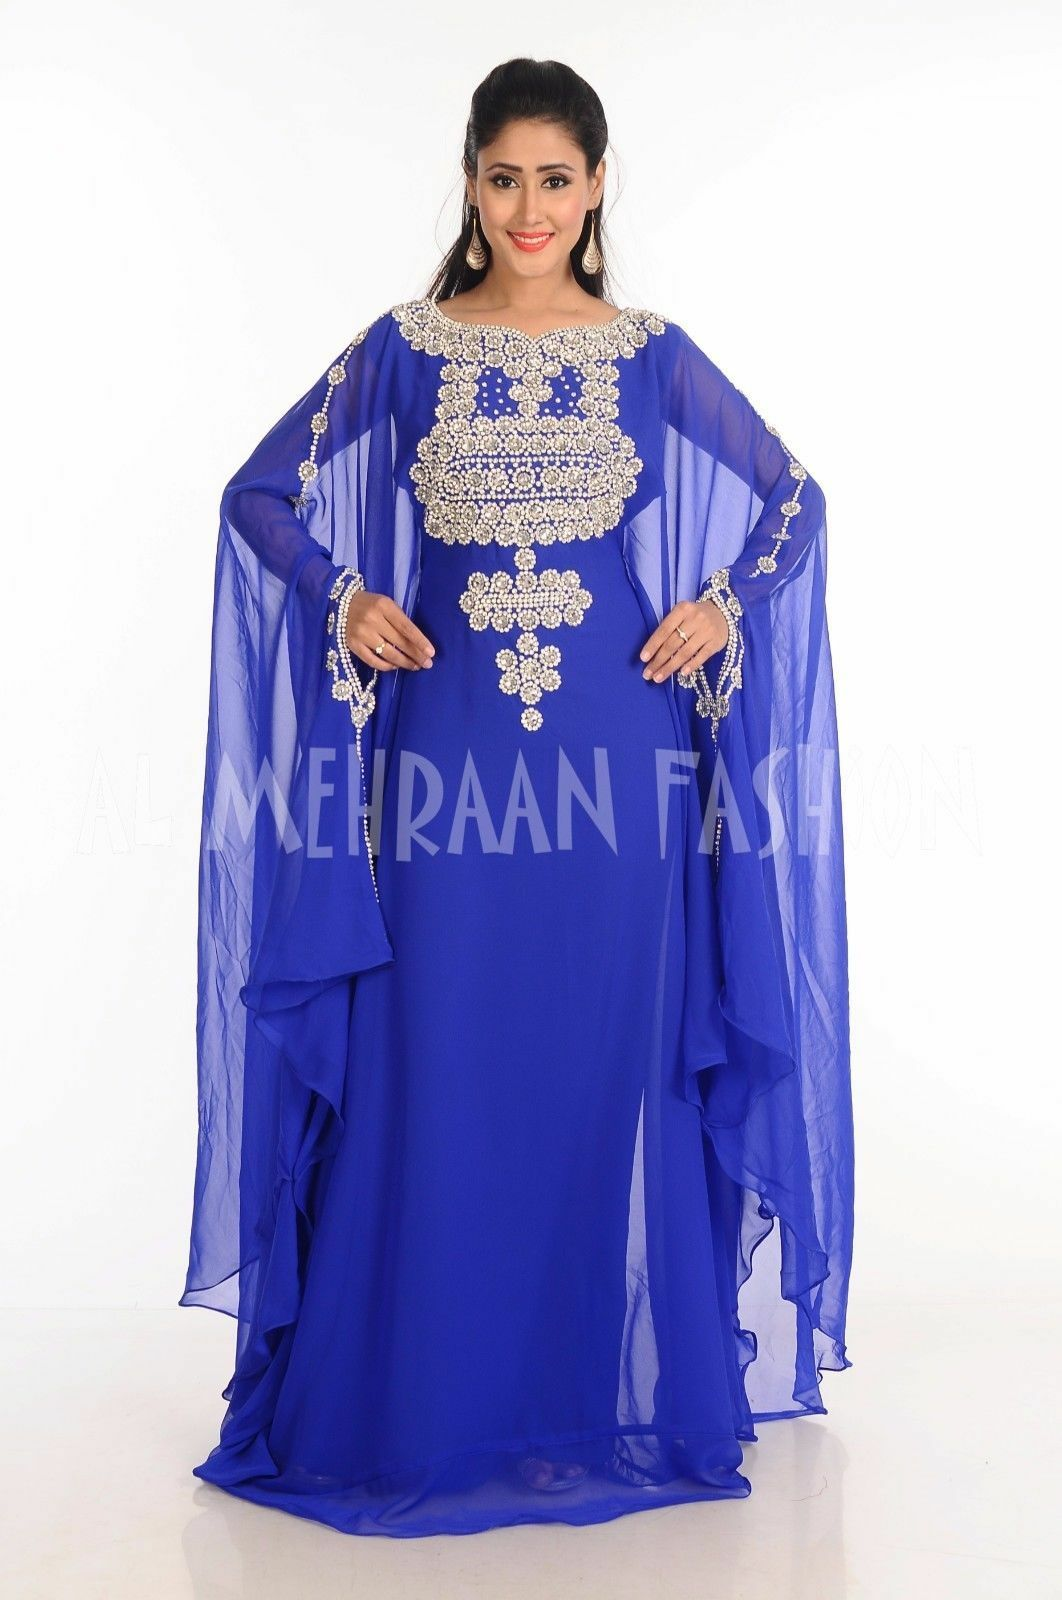 WEDDING CHEAP FARASHA FANCY DUBAI KAFTAN ARBIAN ISLAMIC GEORGTTE DRESS 179